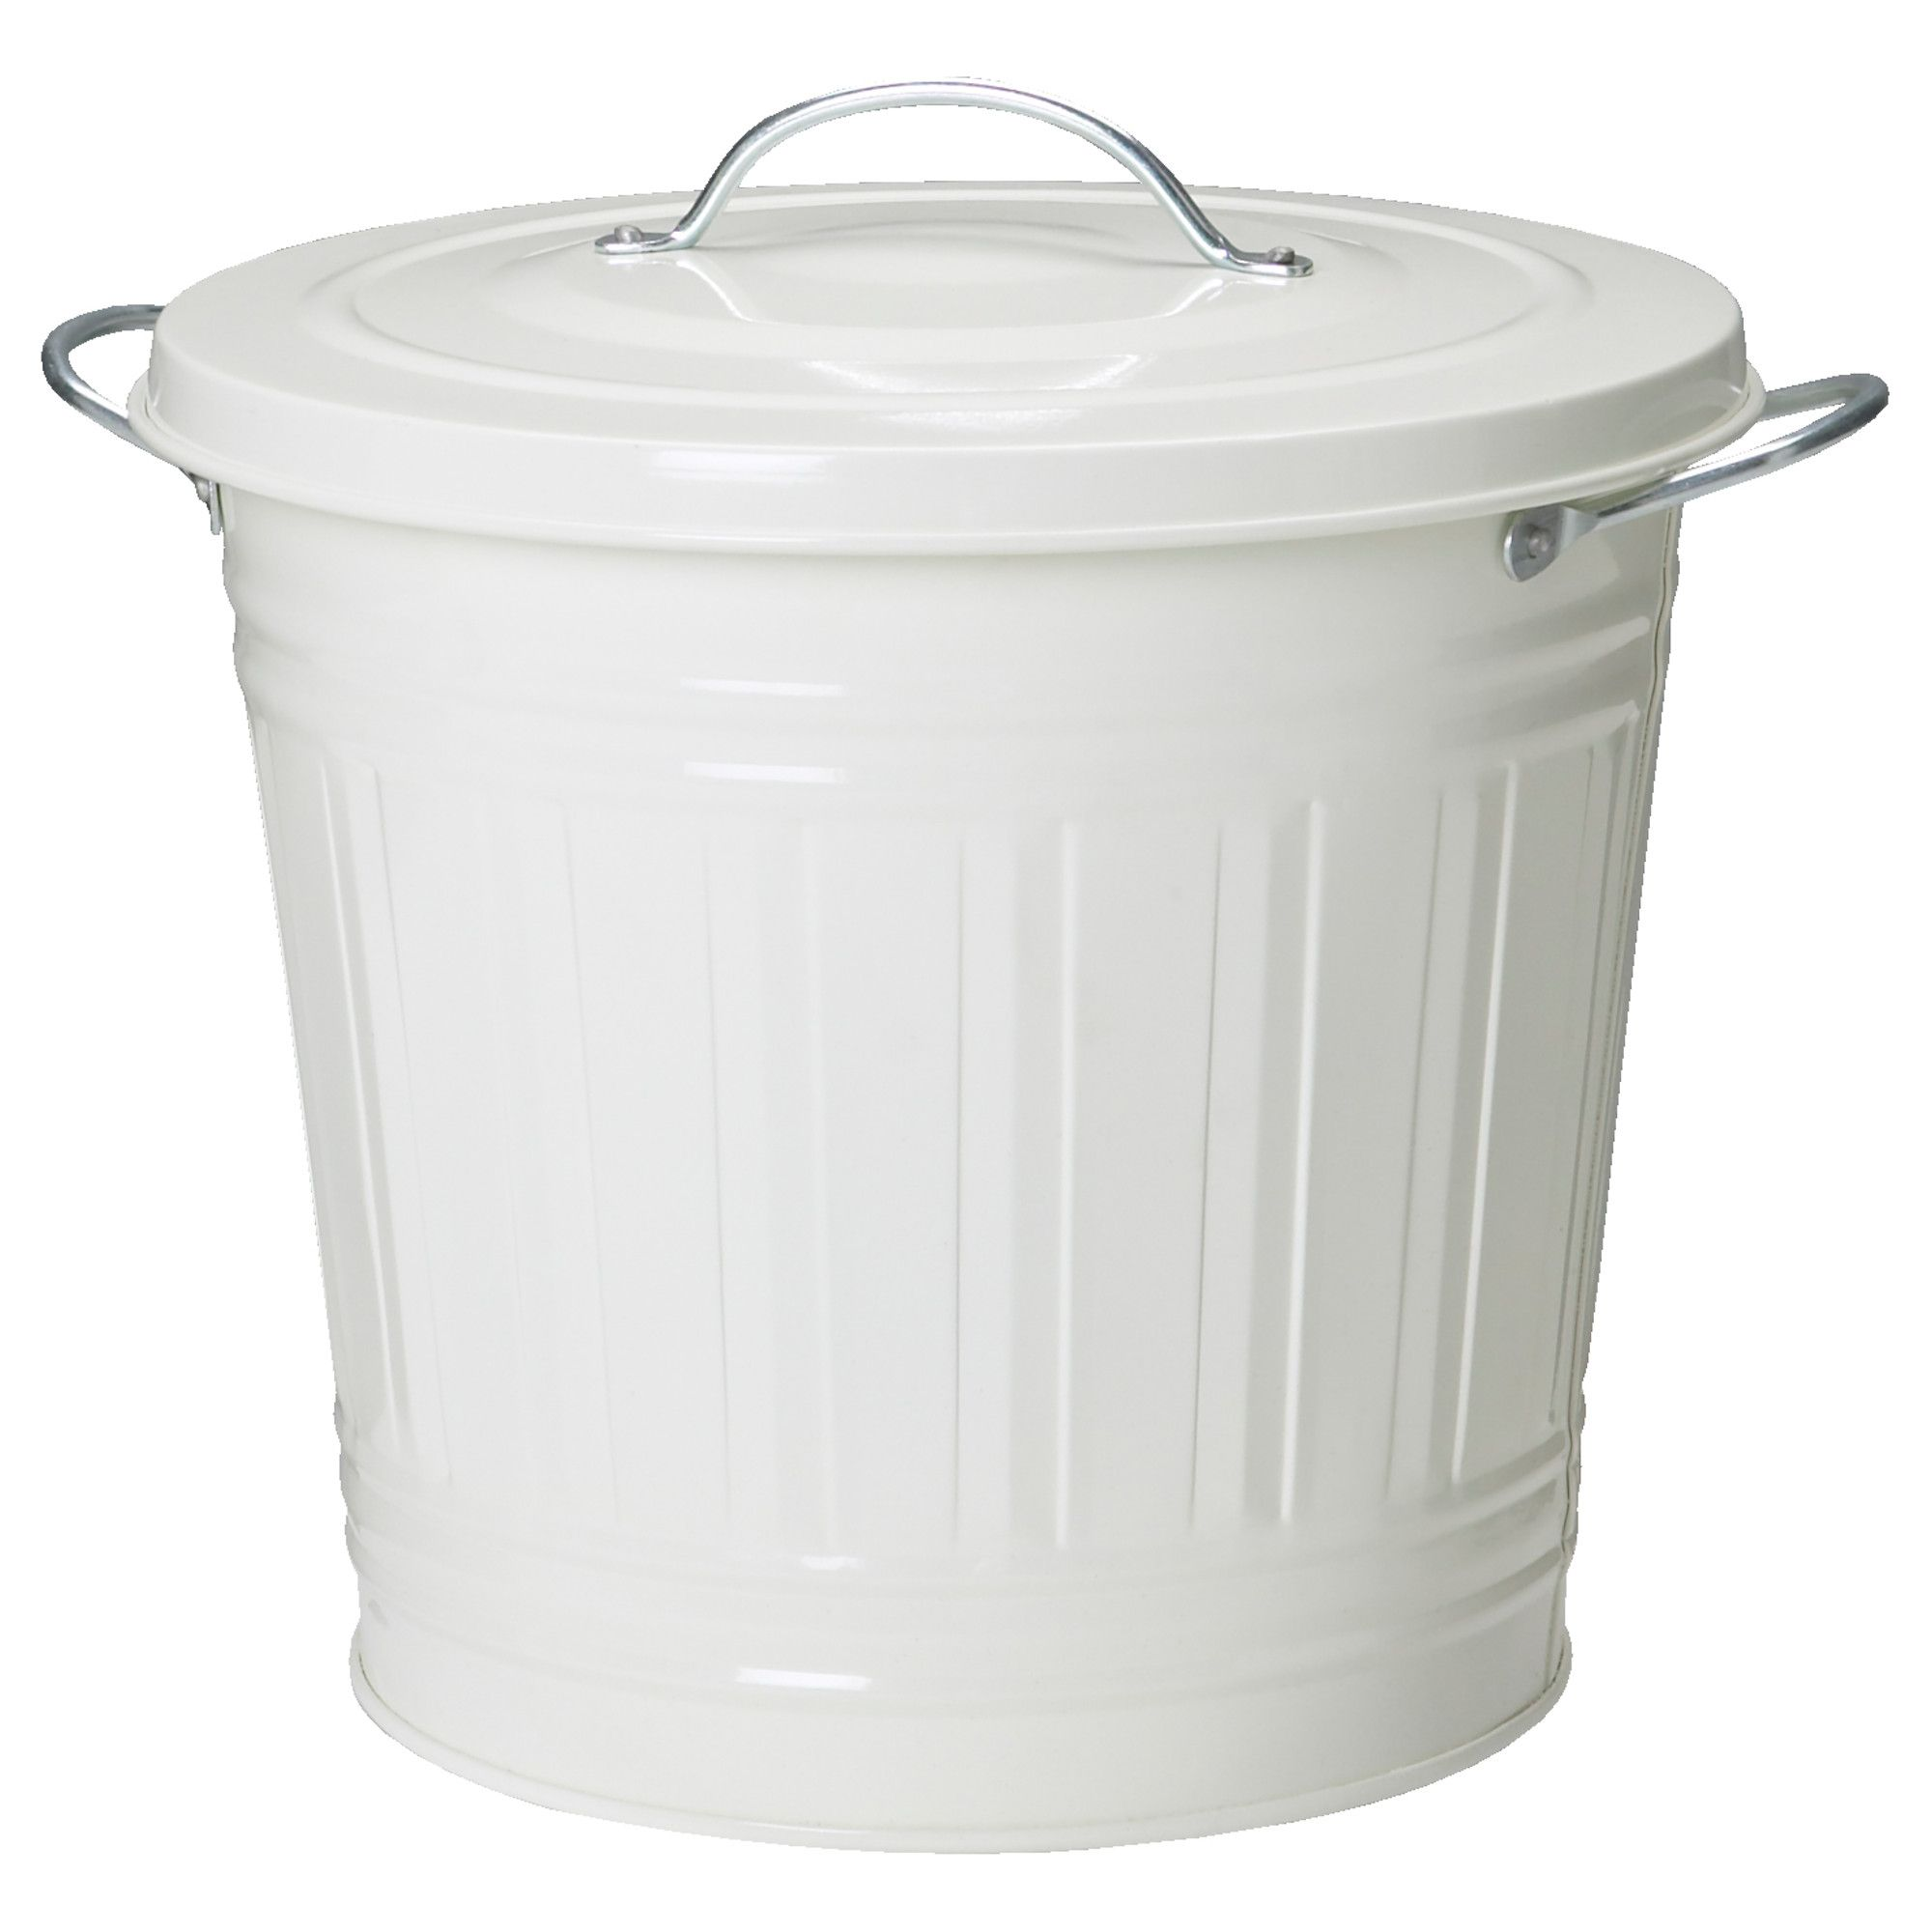 knodd bin with lid white 4 gallon ikea get 2 one for